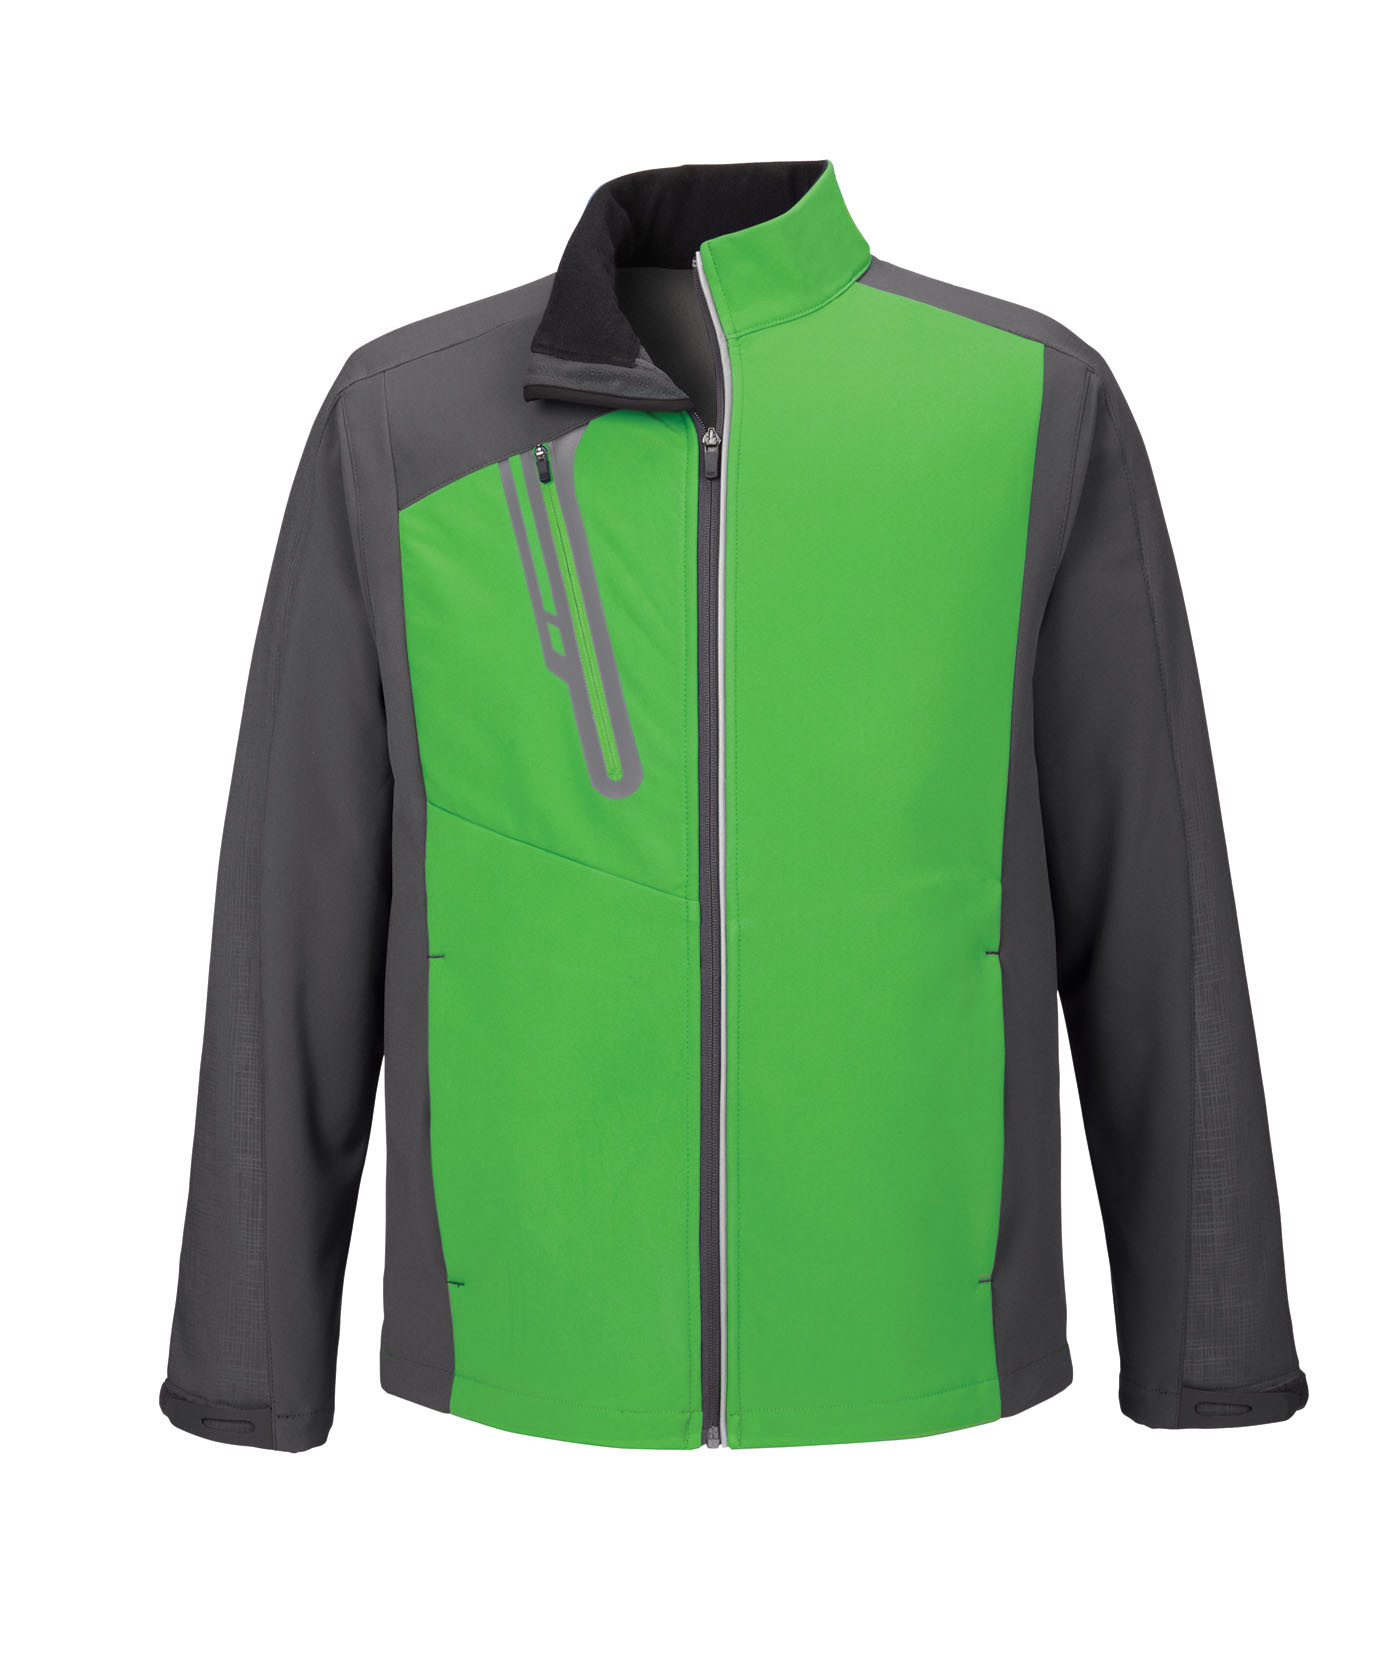 Ash City UTK 1 Warm.Logik 88176 - Terrain Men's Color-Block Soft Shell With Embossed Print